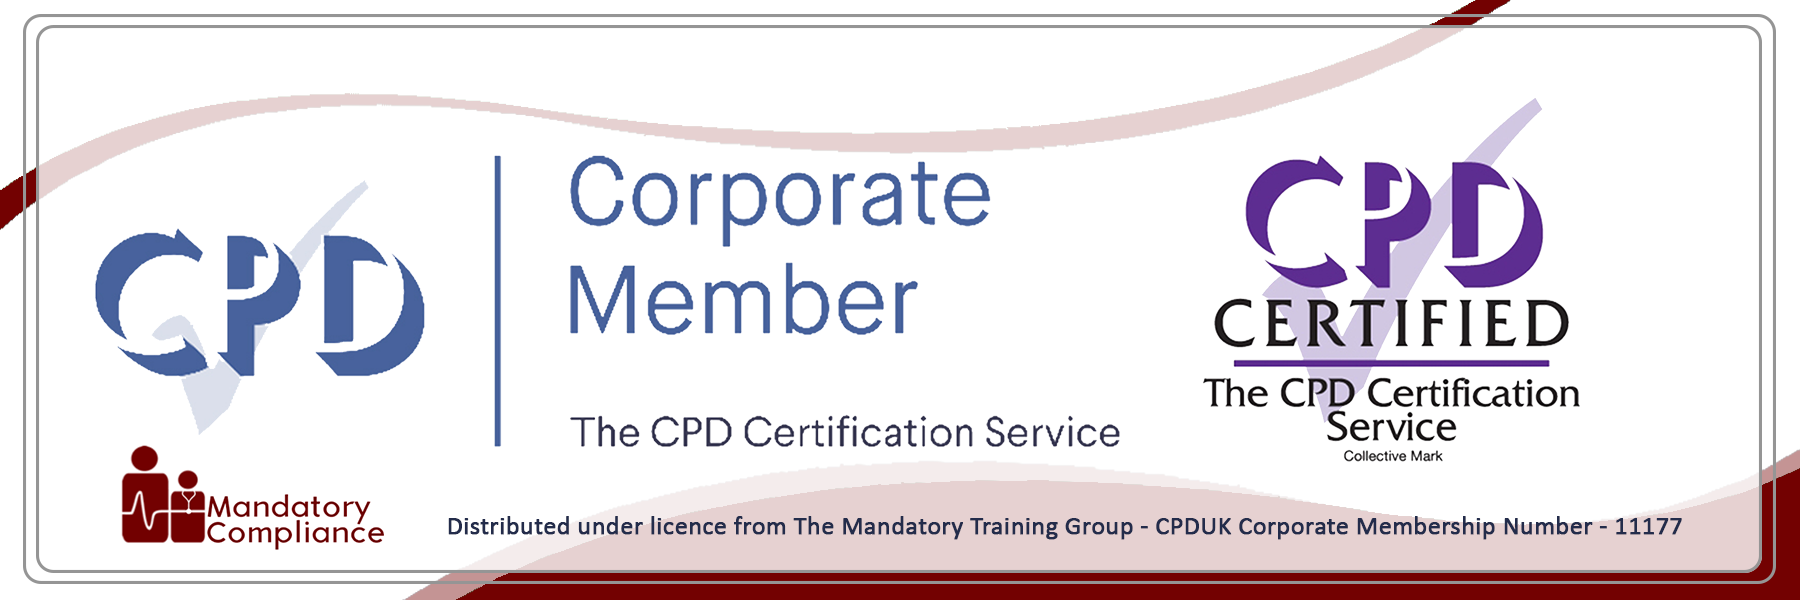 Sales Fundamentals Training - Online Training Course - CPD Accredited - Mandatory Compliance UK -